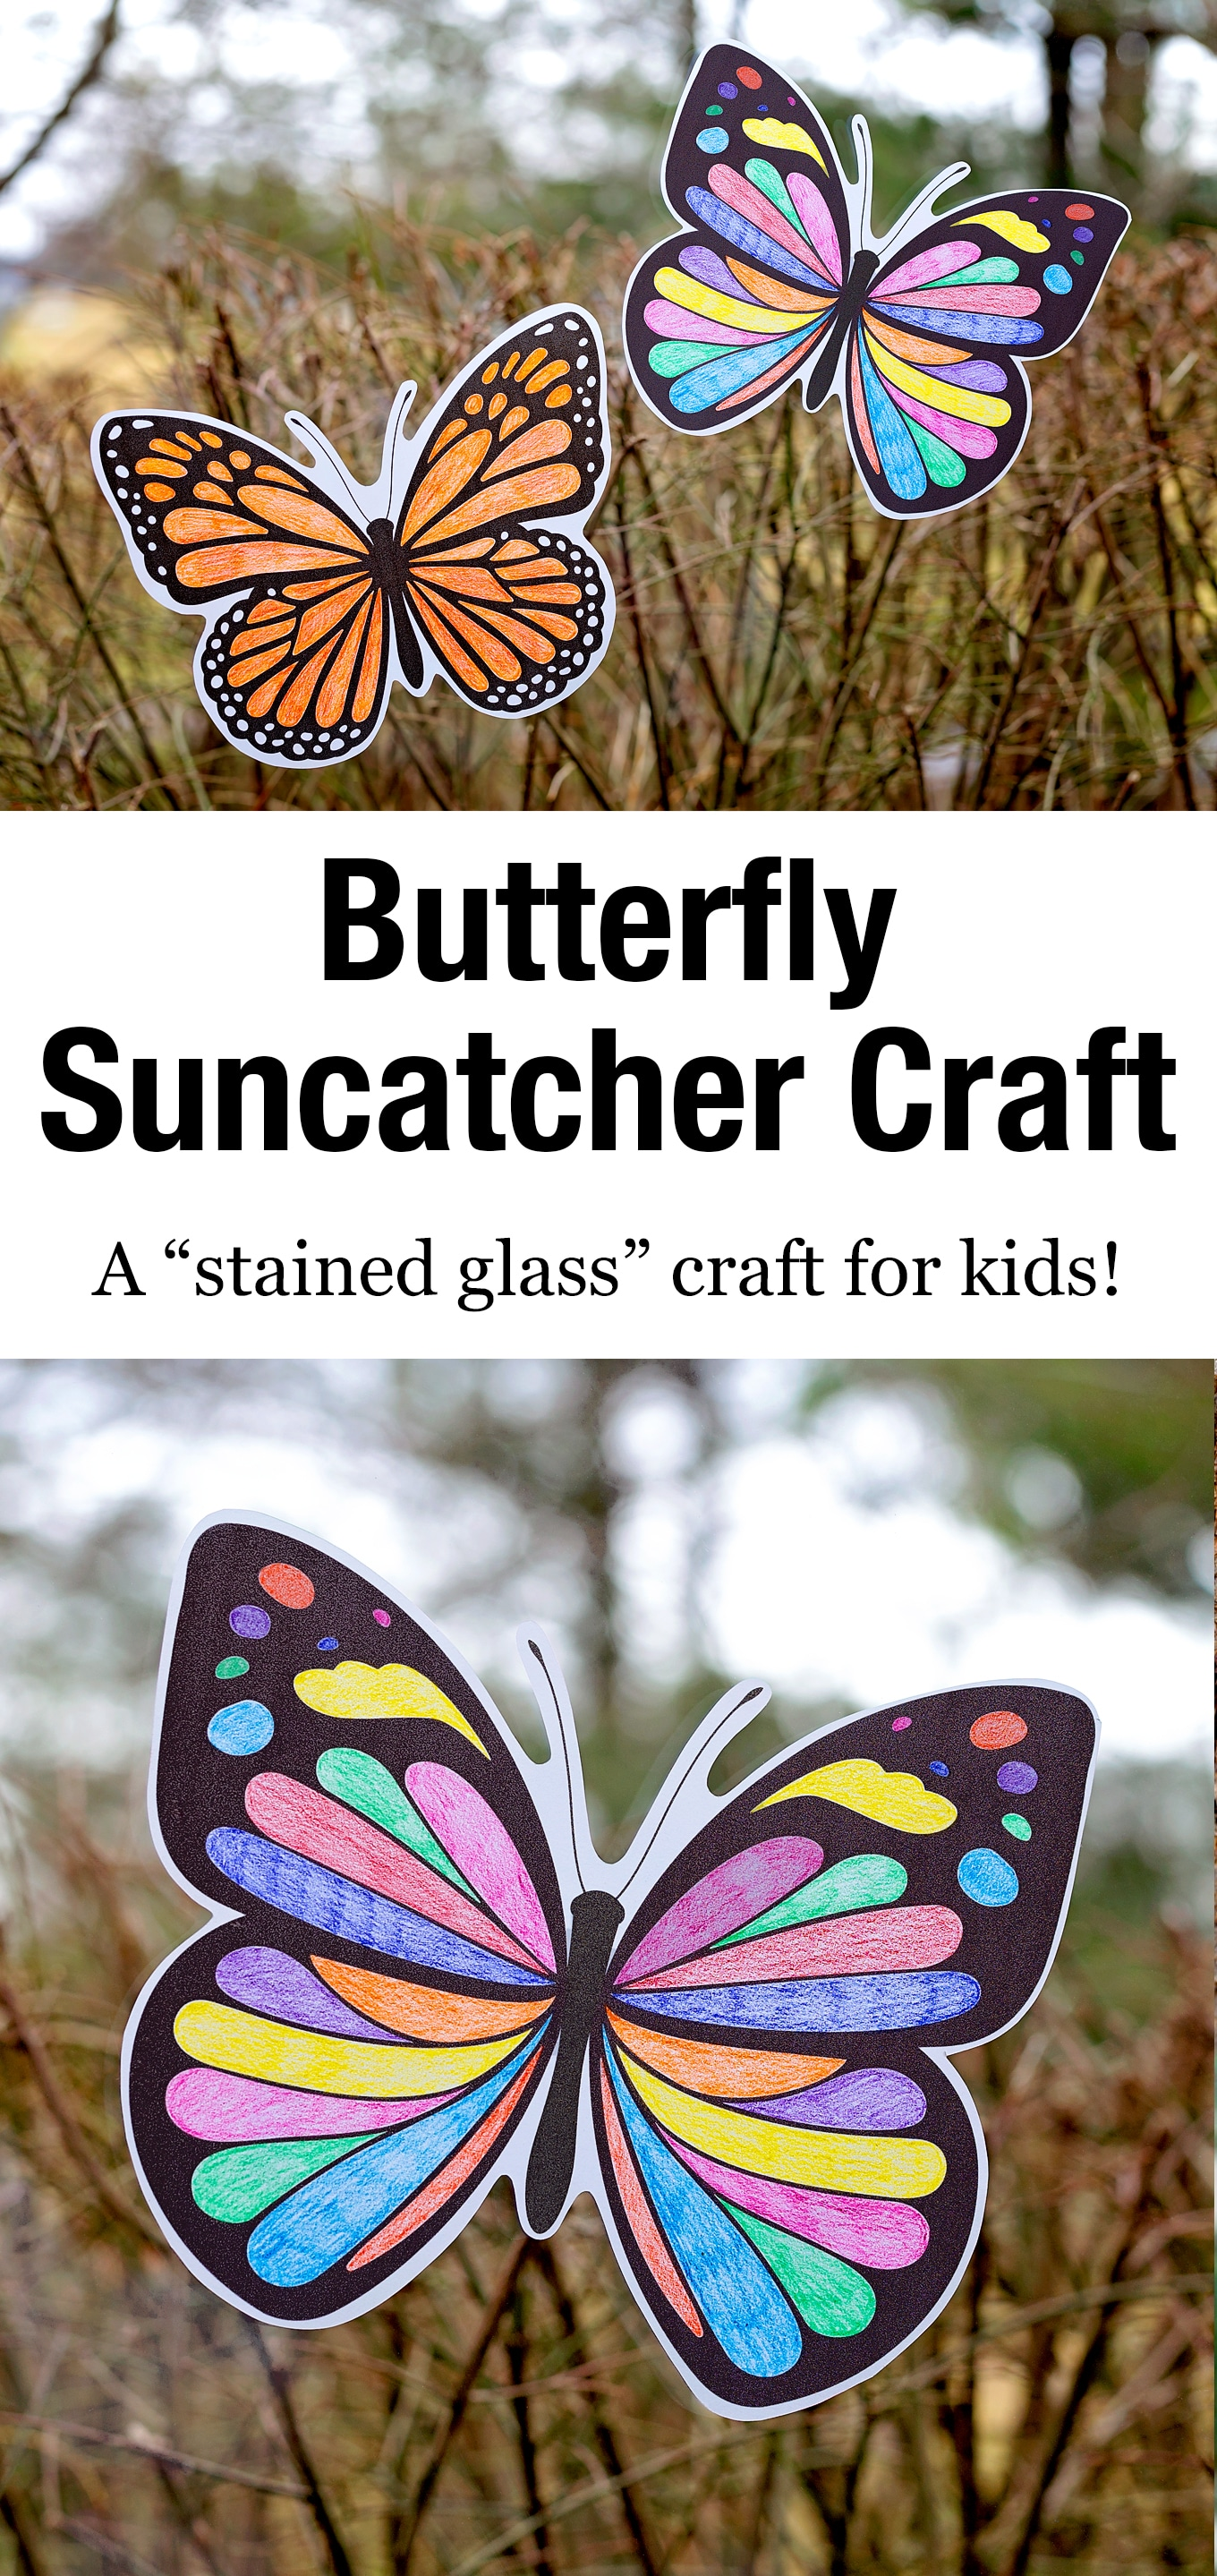 This Butterfly Suncatcher Craft is a creative and beautiful craft that you can easily display in your home. It's perfect for kids of all ages! #butterflysuncatcher #kidscrafts #springcrafts via @firefliesandmudpies